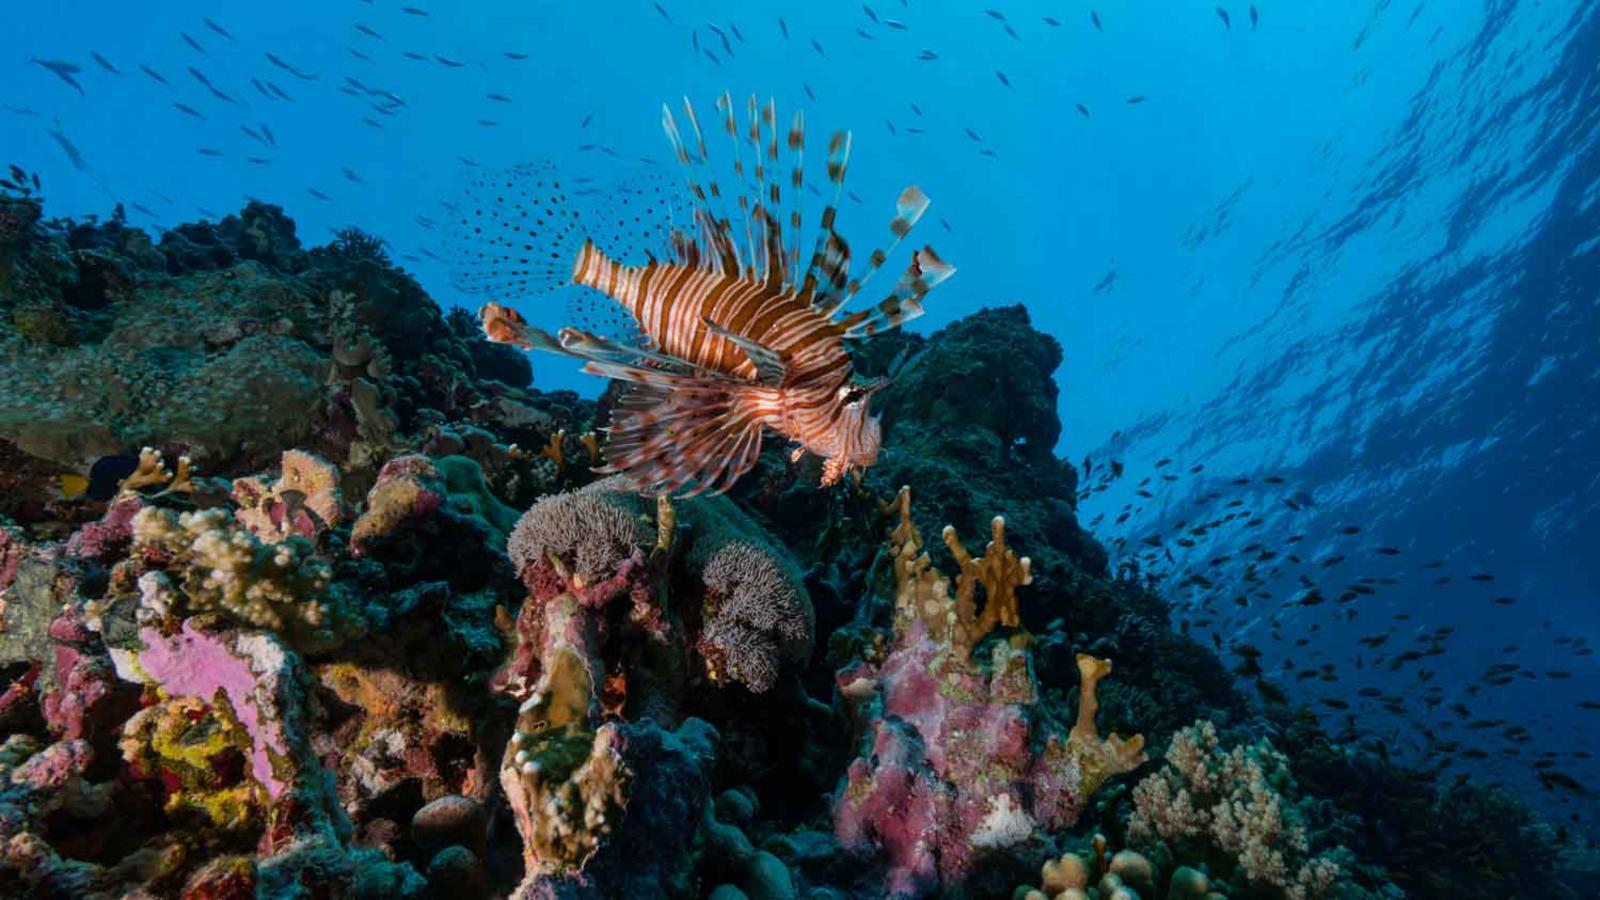 The super-corals of the Red Sea